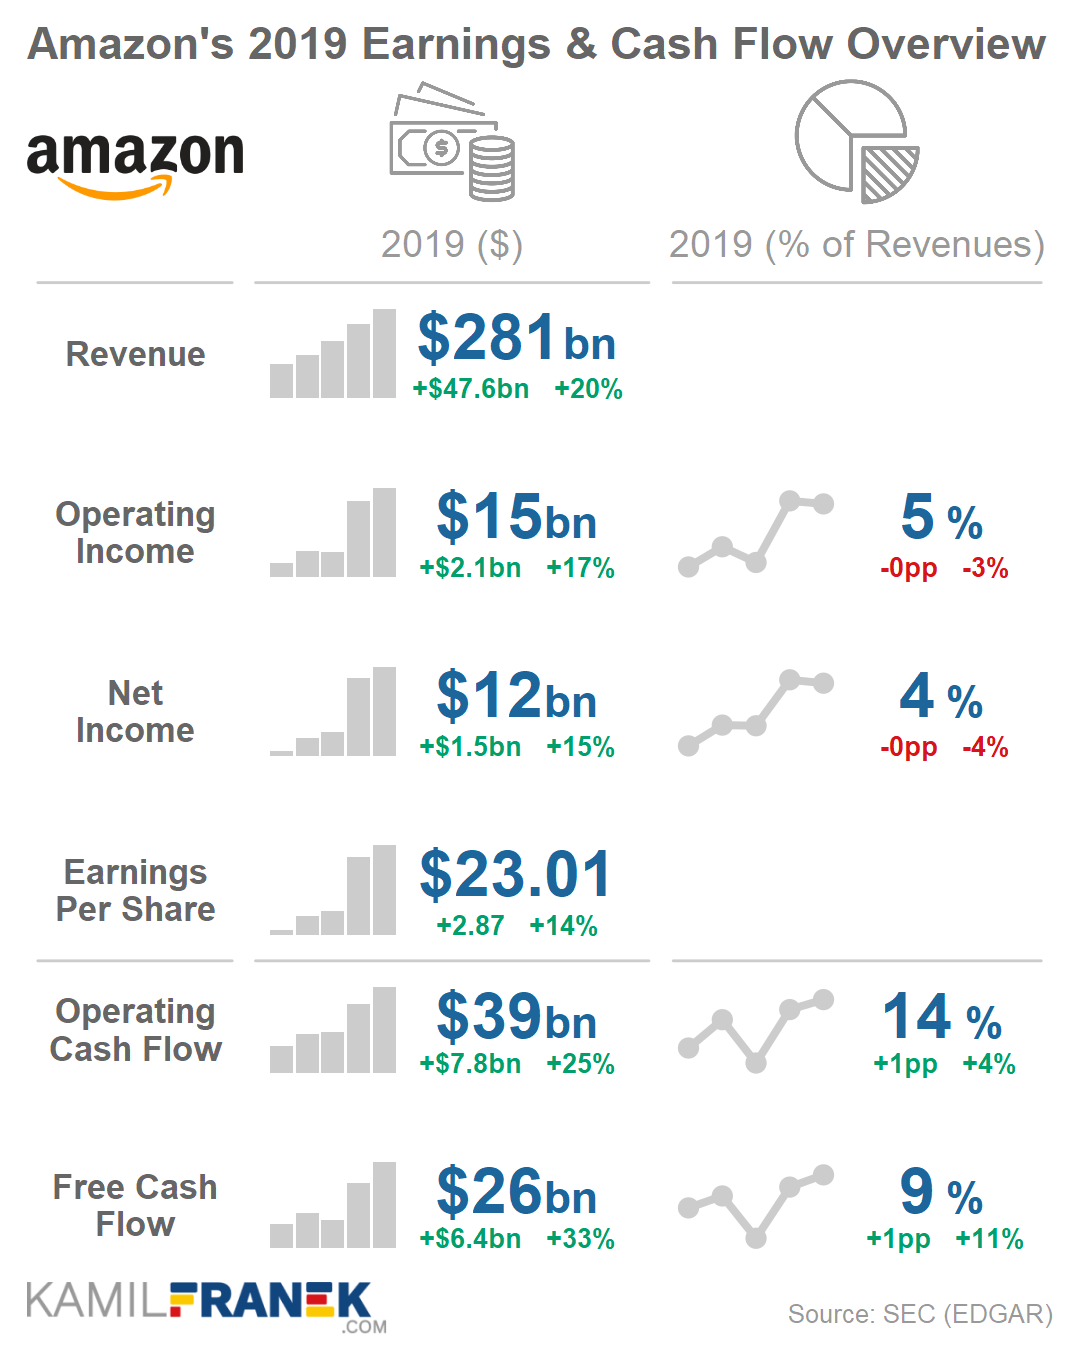 Overview of Amazon's key earnings and cash flow metrics 2019